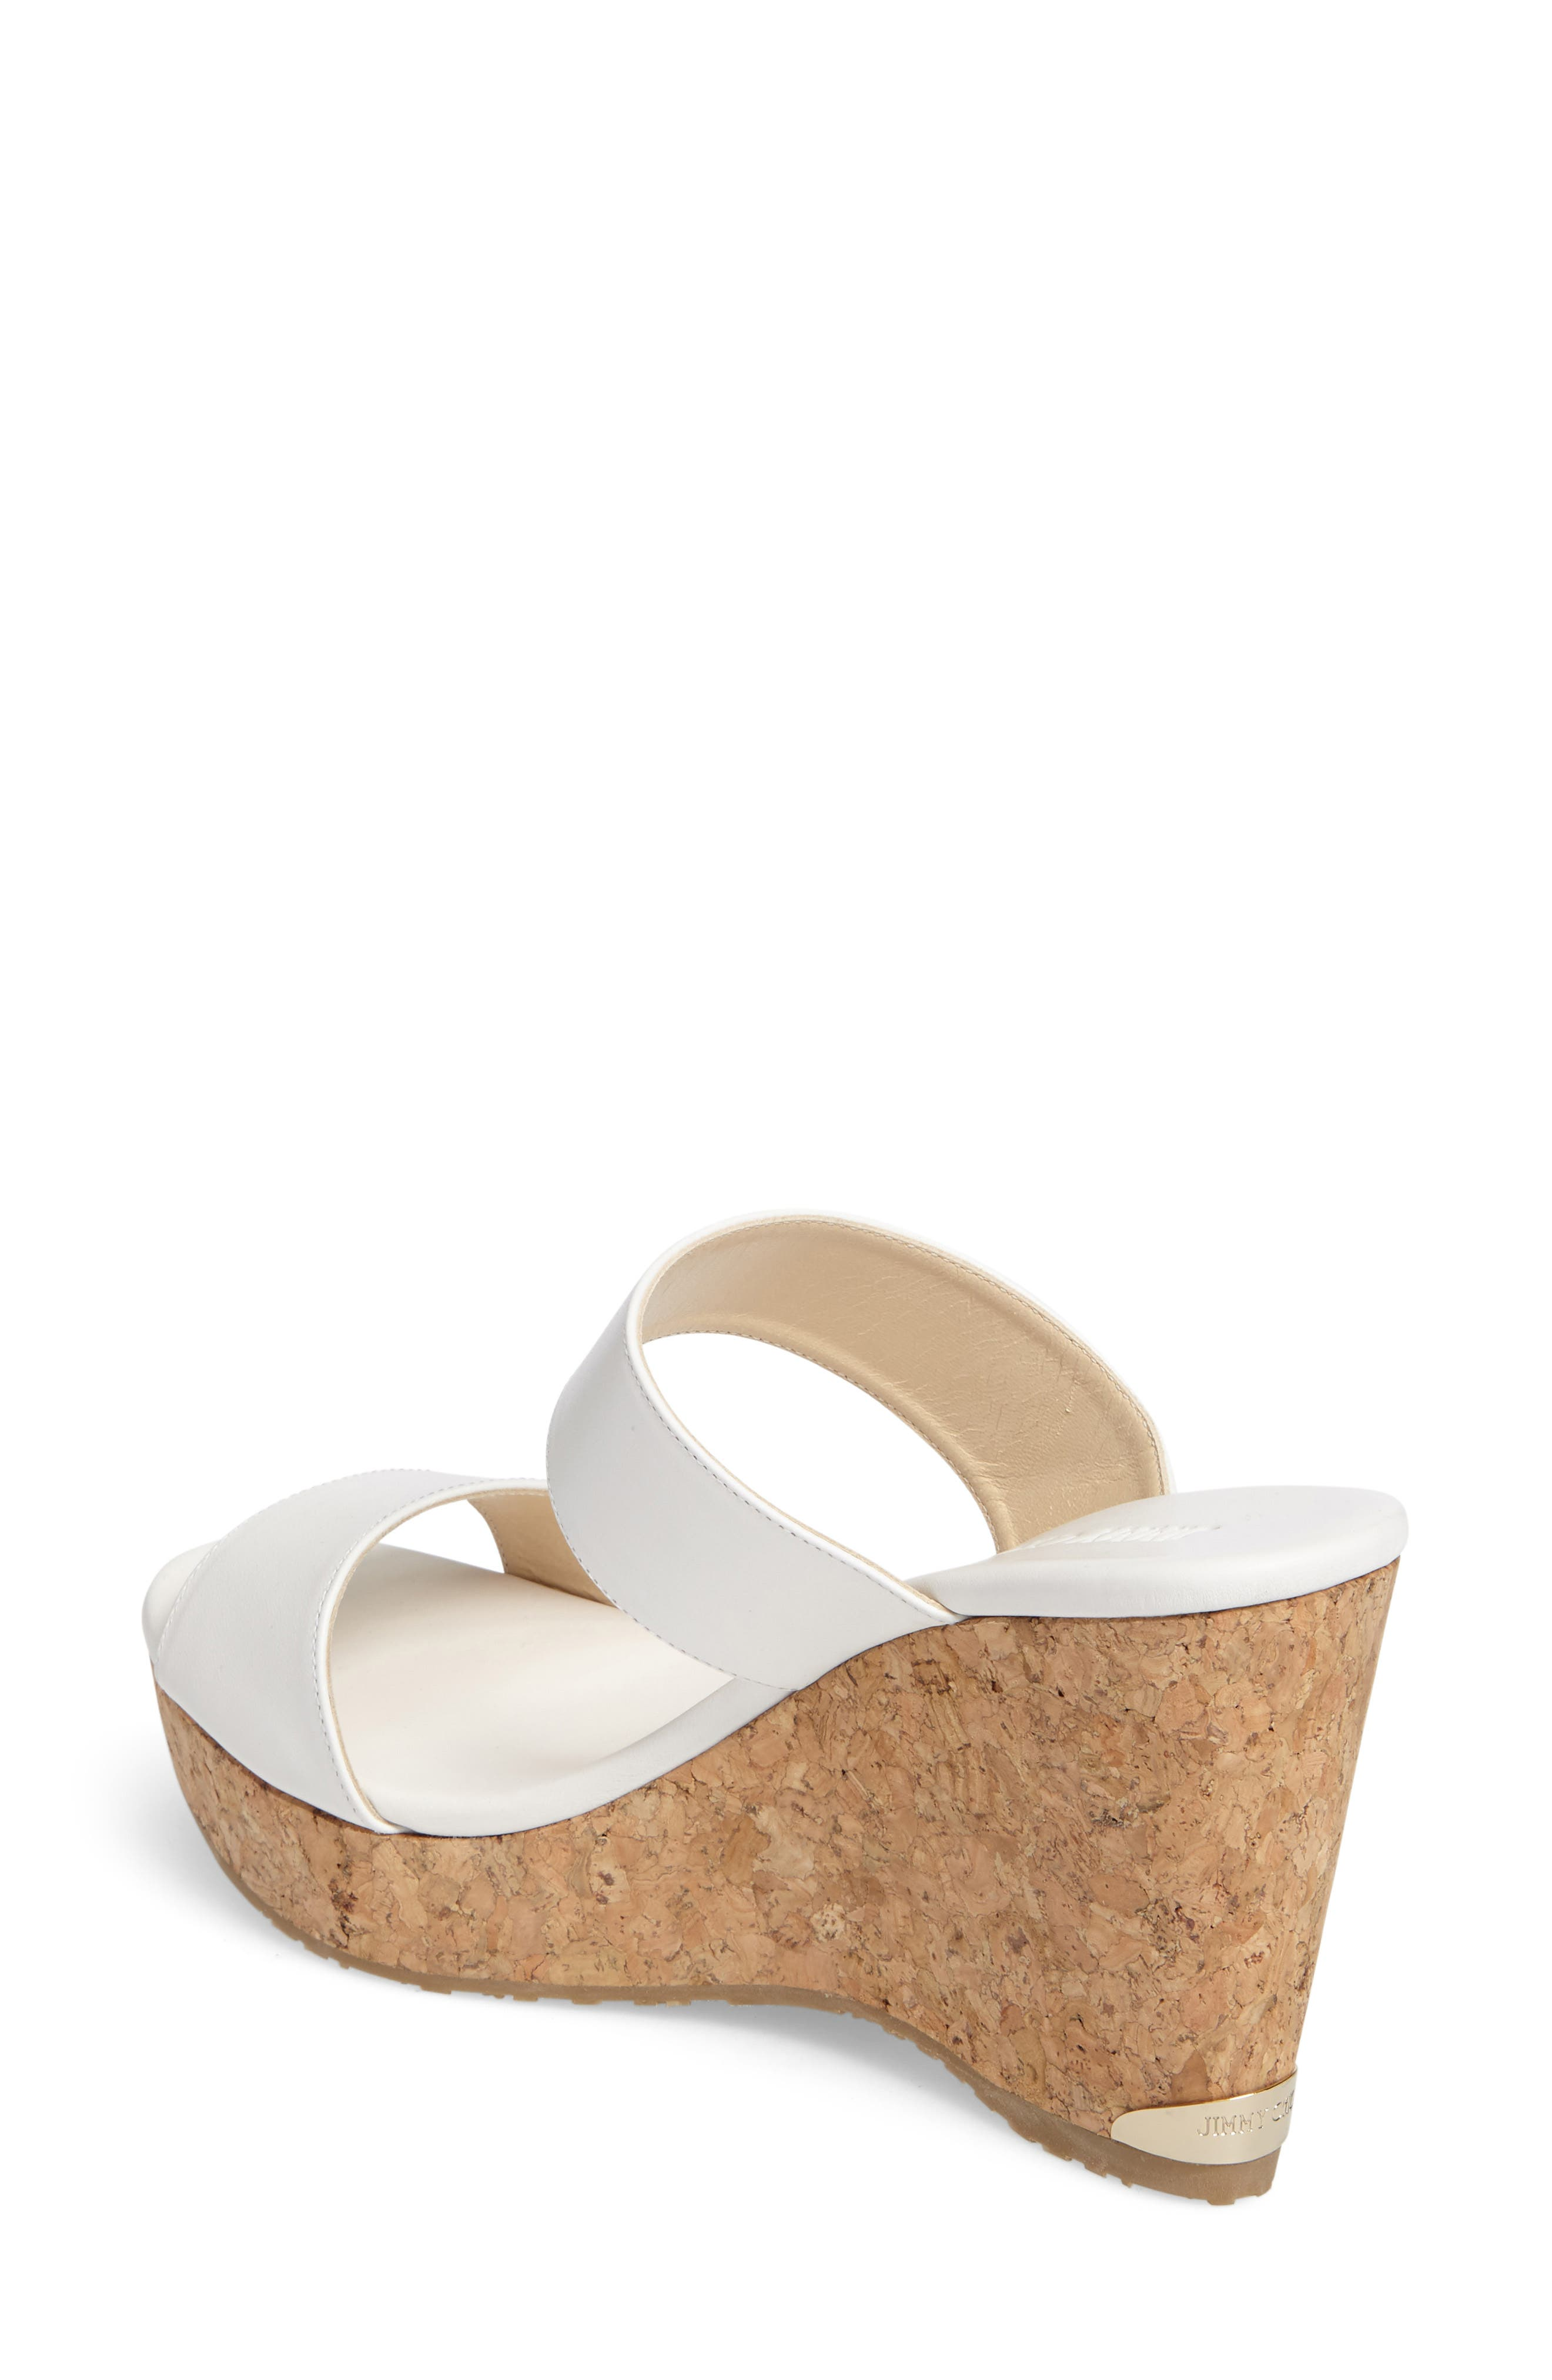 Parker Wedge Sandal,                             Alternate thumbnail 2, color,                             White Leather